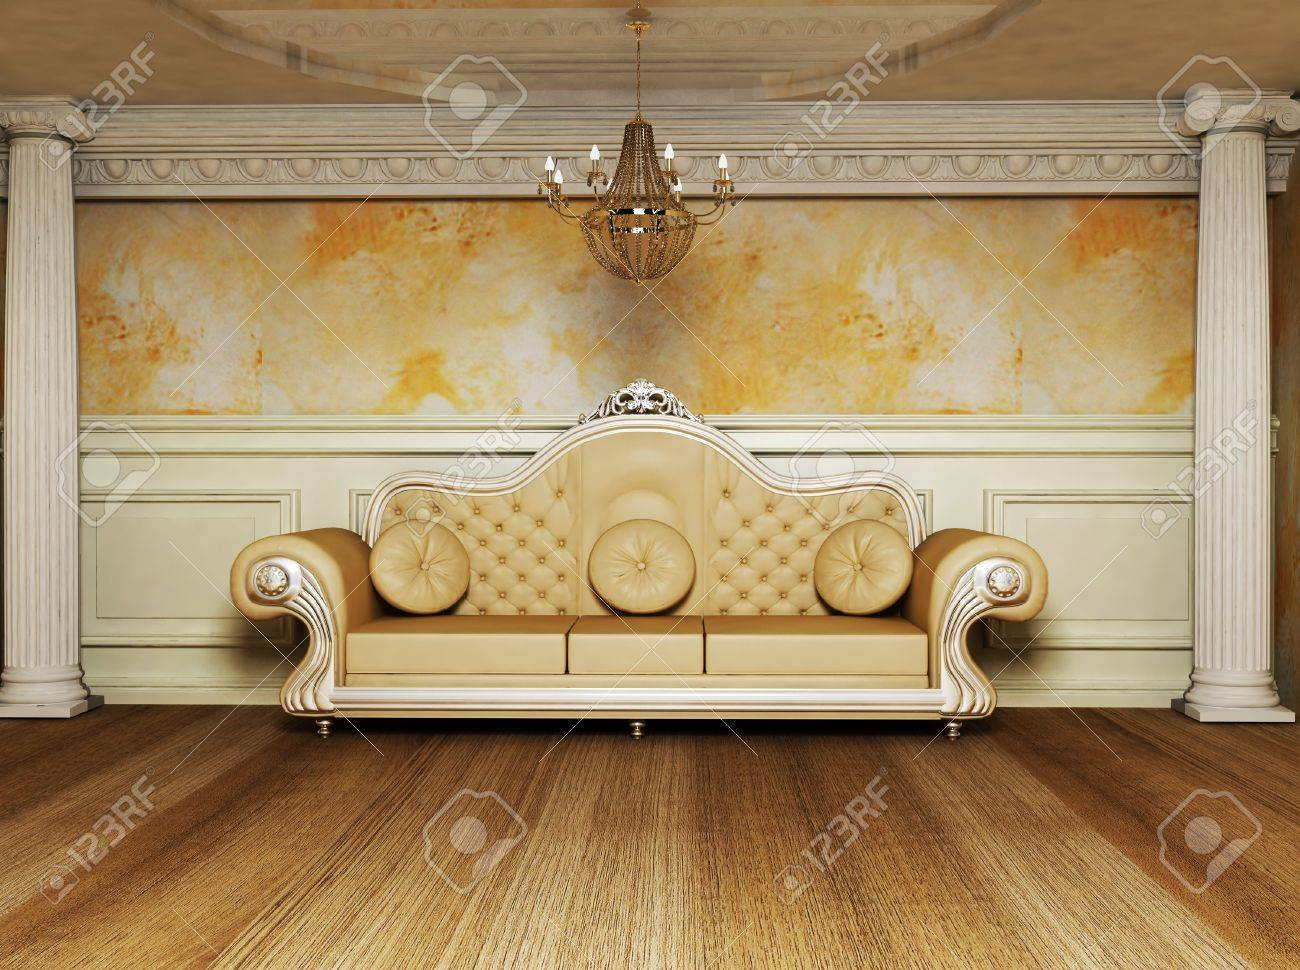 this is an antique interior with a beautiful sofa and the columns